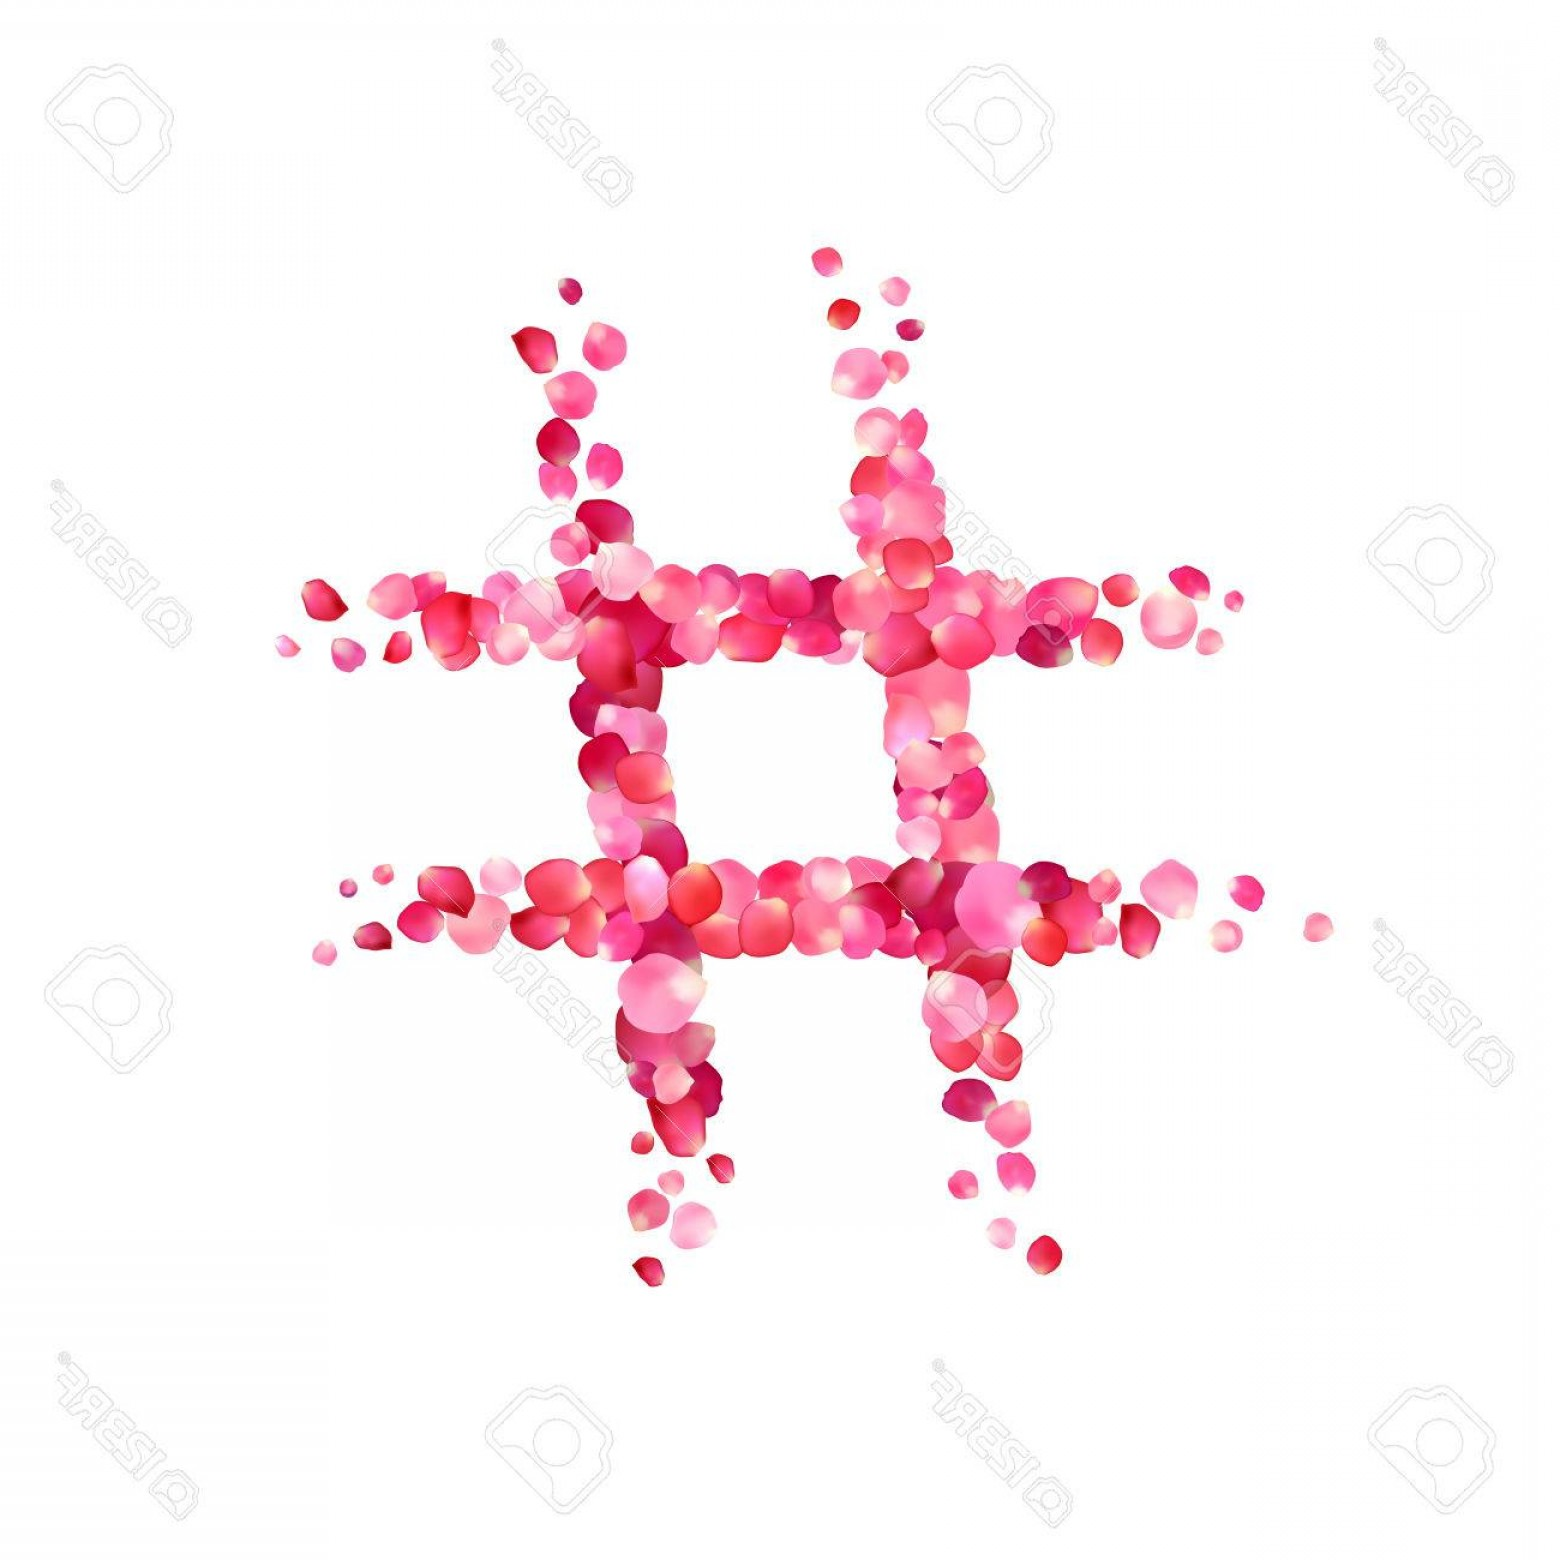 Hashtag Rose Vector: Photostock Vector Hashtag Vector Sign Of Pink Rose Petals